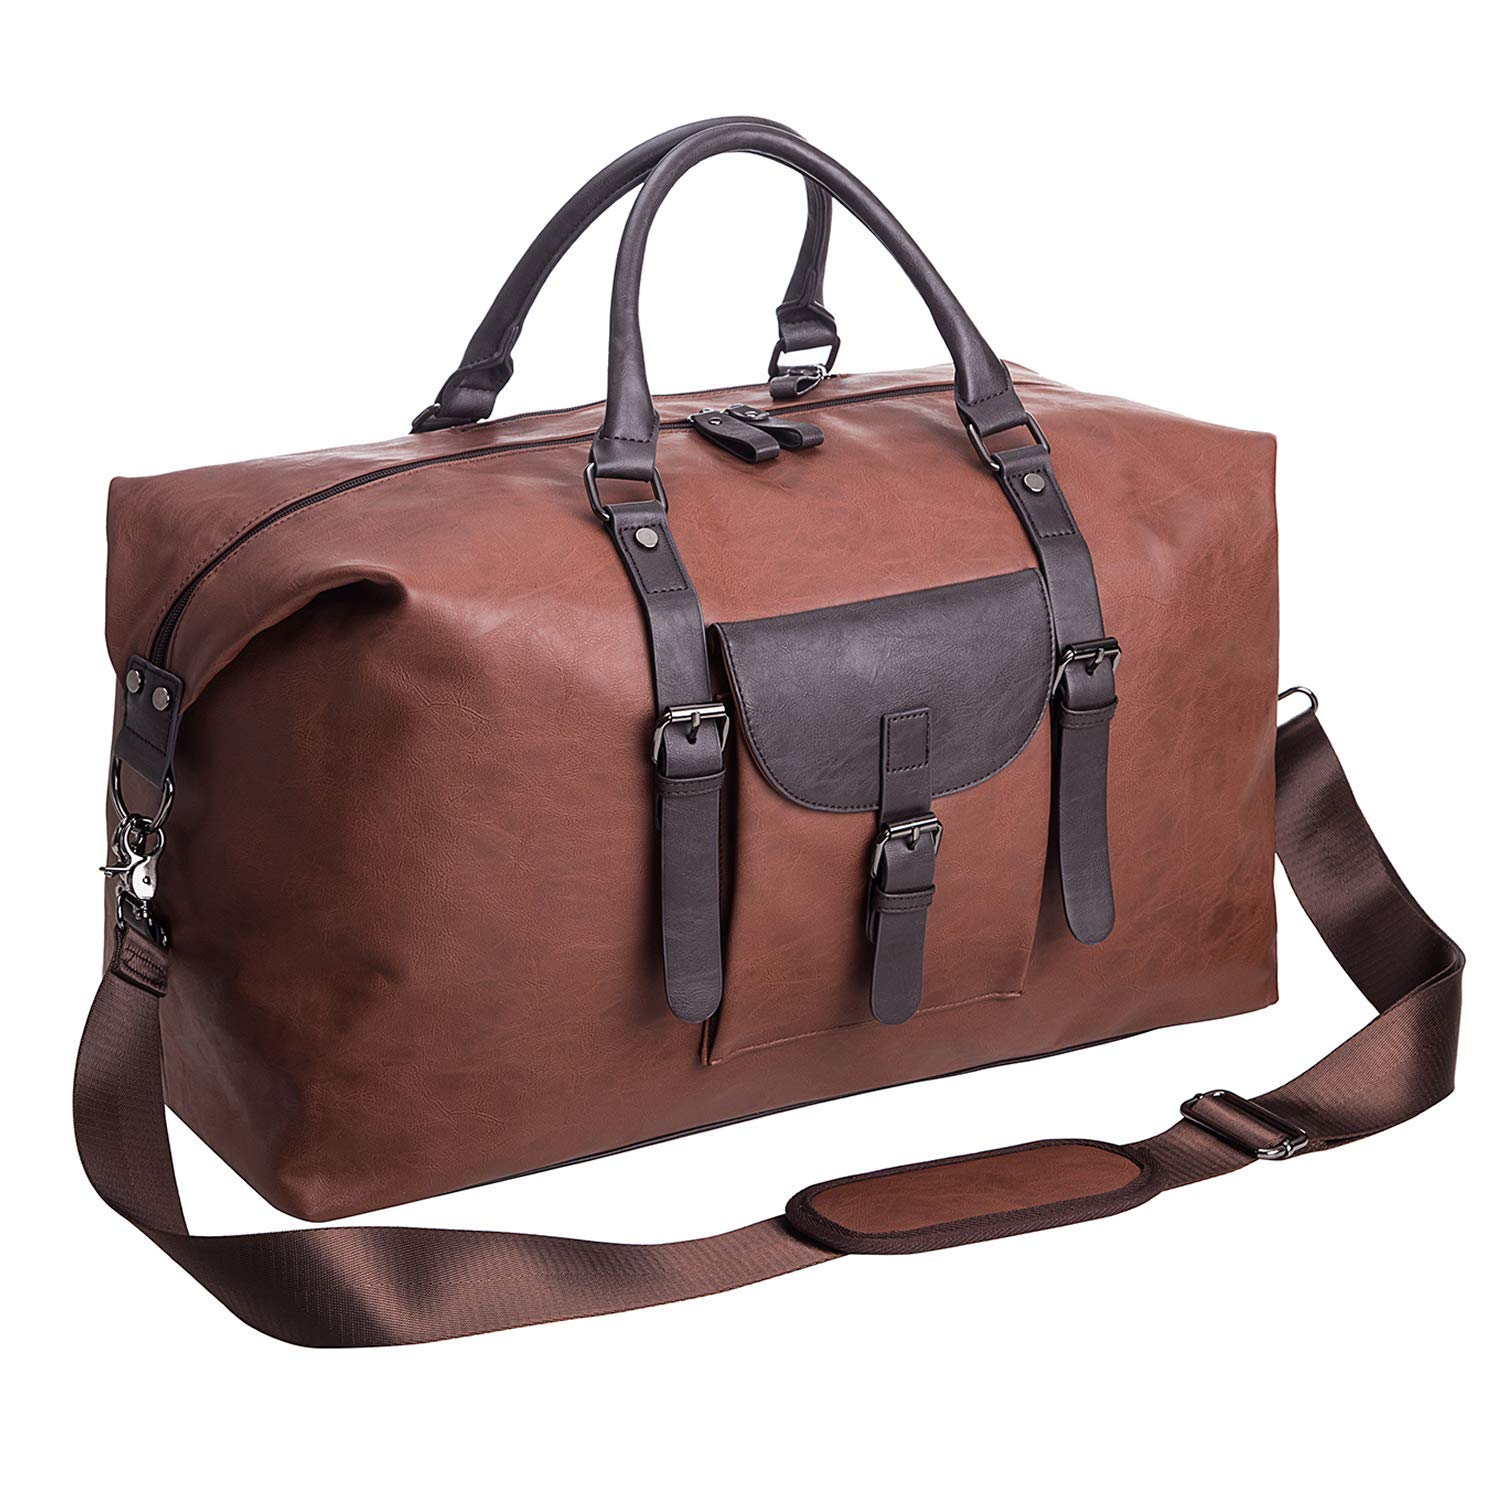 1aea9ef7881f Oversized Leather Travel Duffel Bag,Weekender Overnight Bag Waterproof  Leather Large Carry On Bag Travel Tote Duffel Bag for Men or Women-Brown